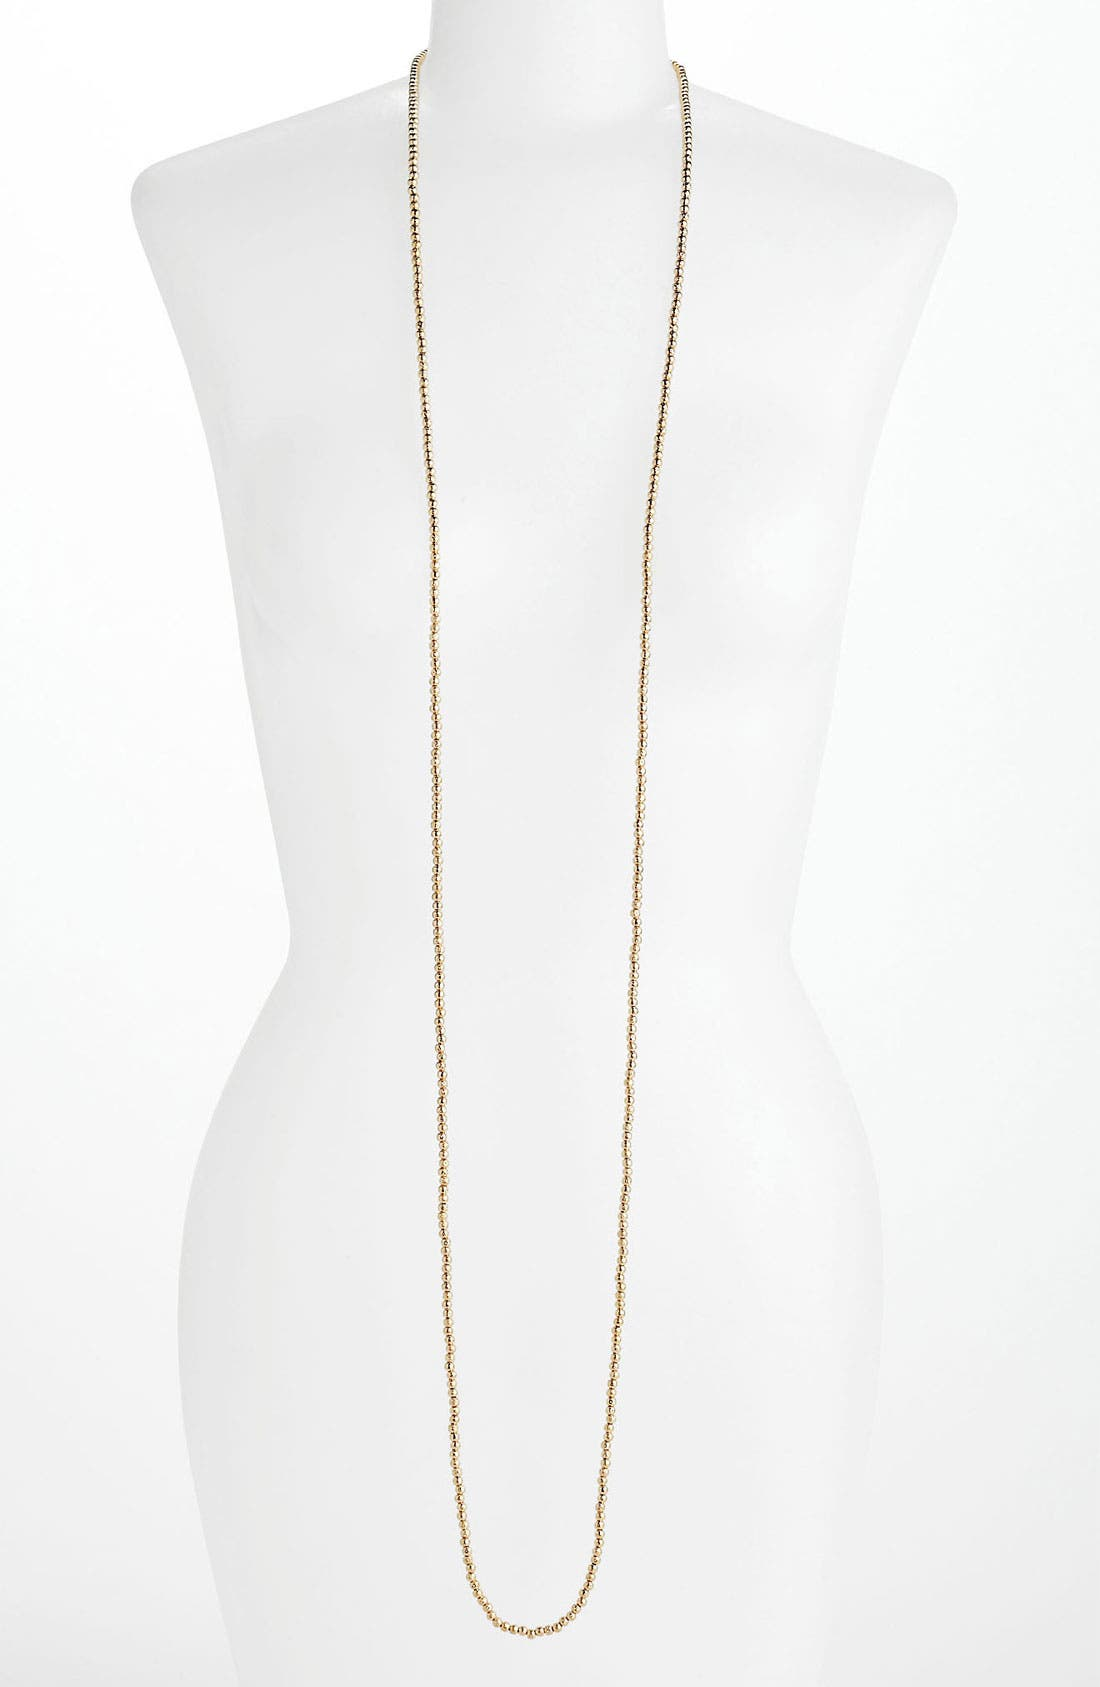 Main Image - Nordstrom 'Sand Dollar' Extra Long Bead Necklace